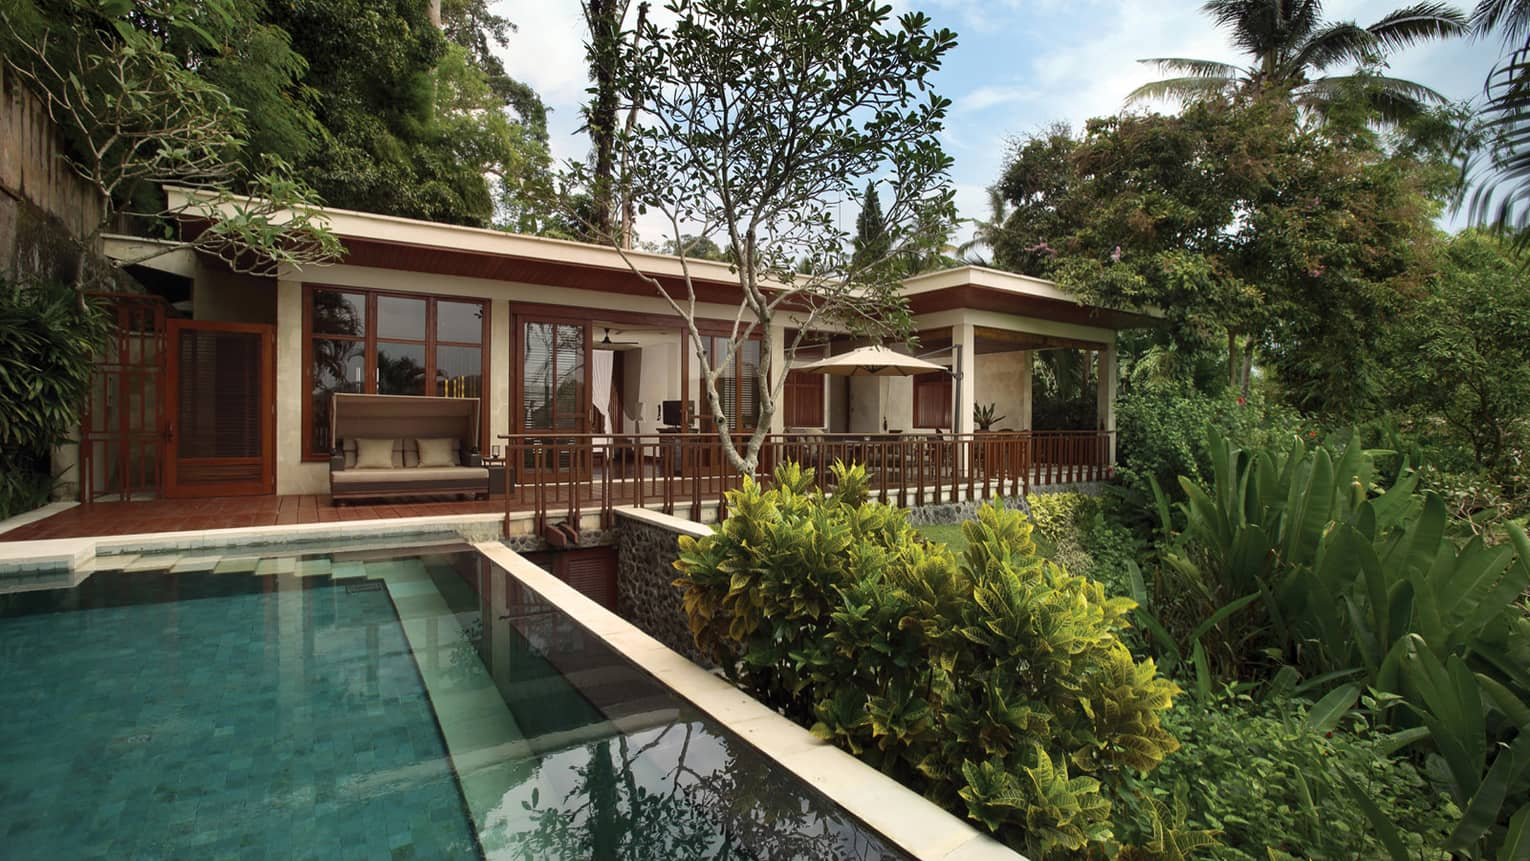 Exterior of Sayan Villa looking past pool and garden, up at deck and white bungalow with wood trim